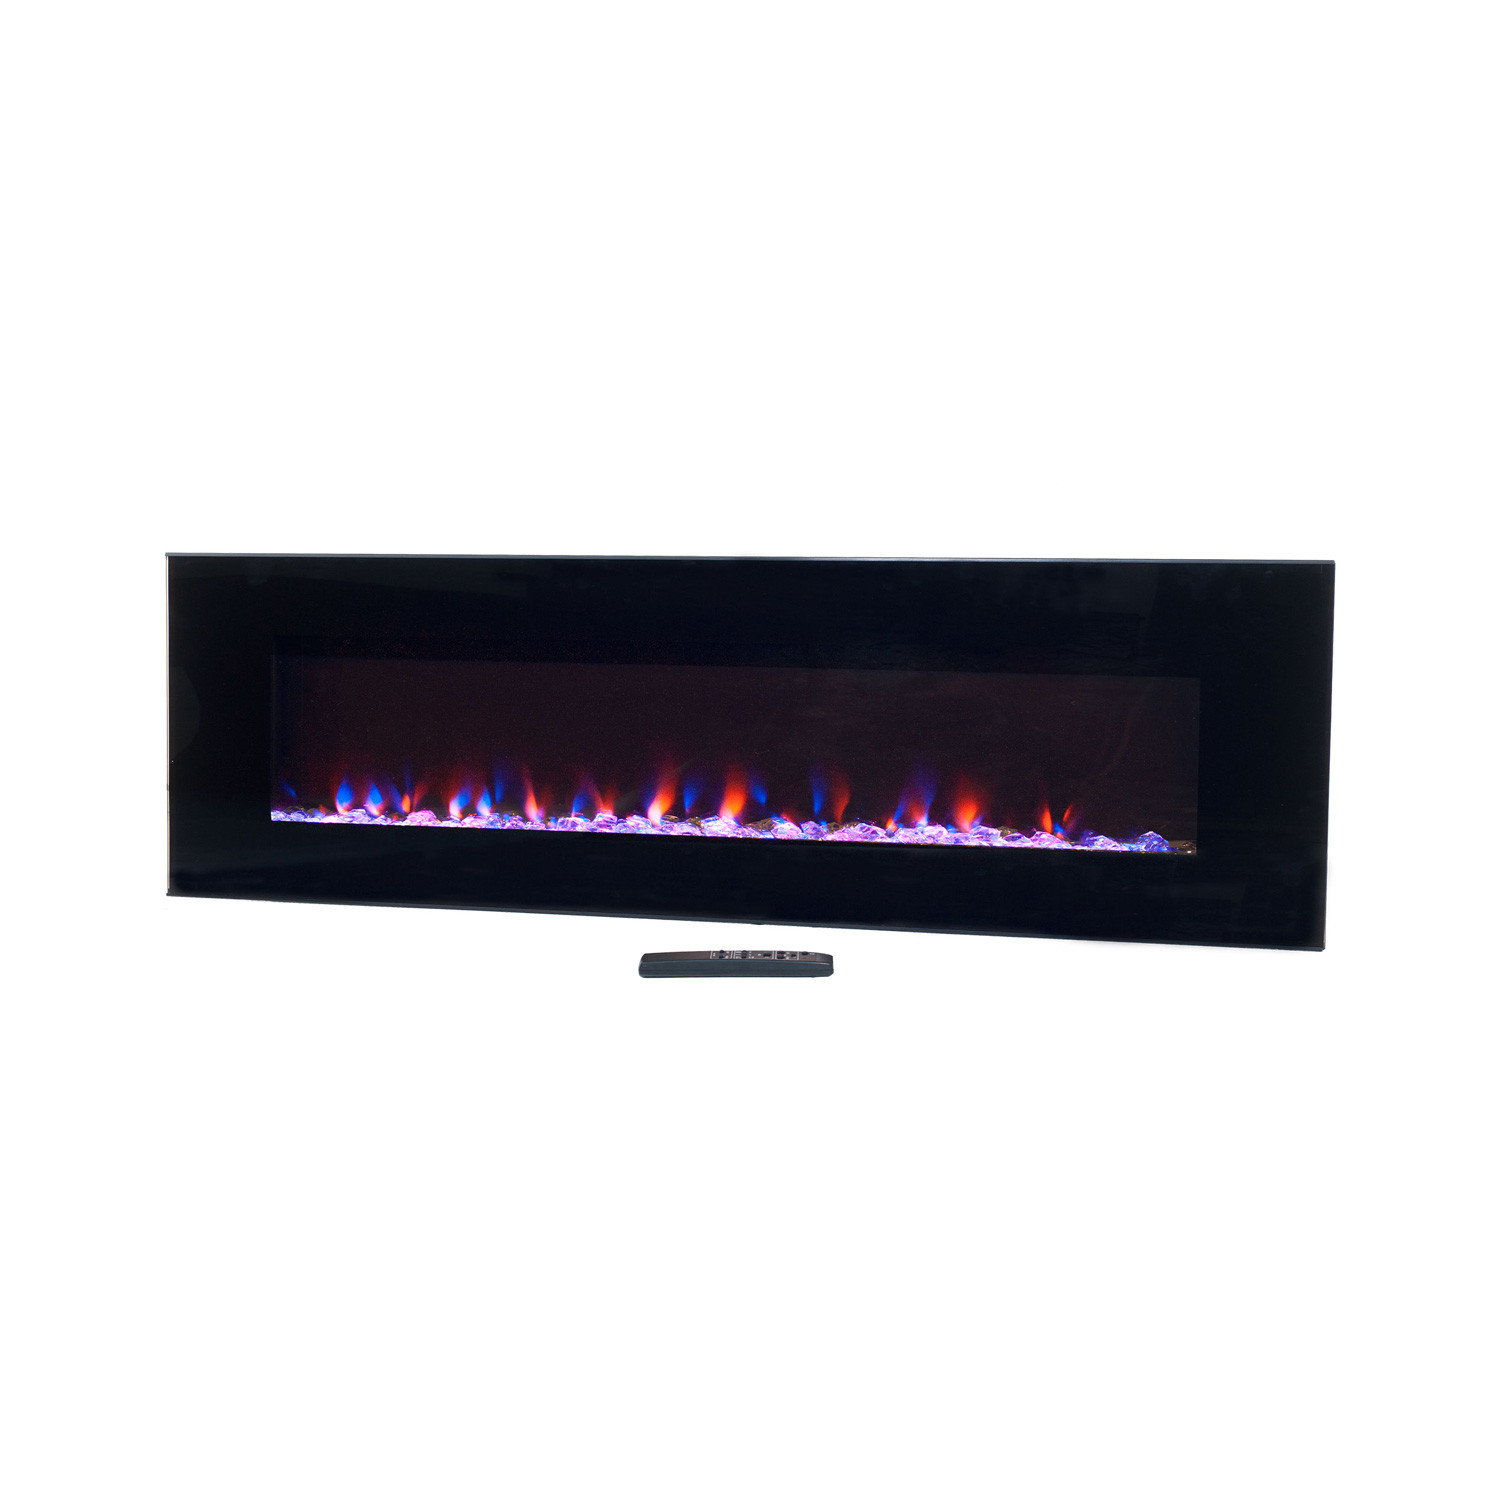 Northwest Led Electric Fireplace Remote Fire Amp Ice